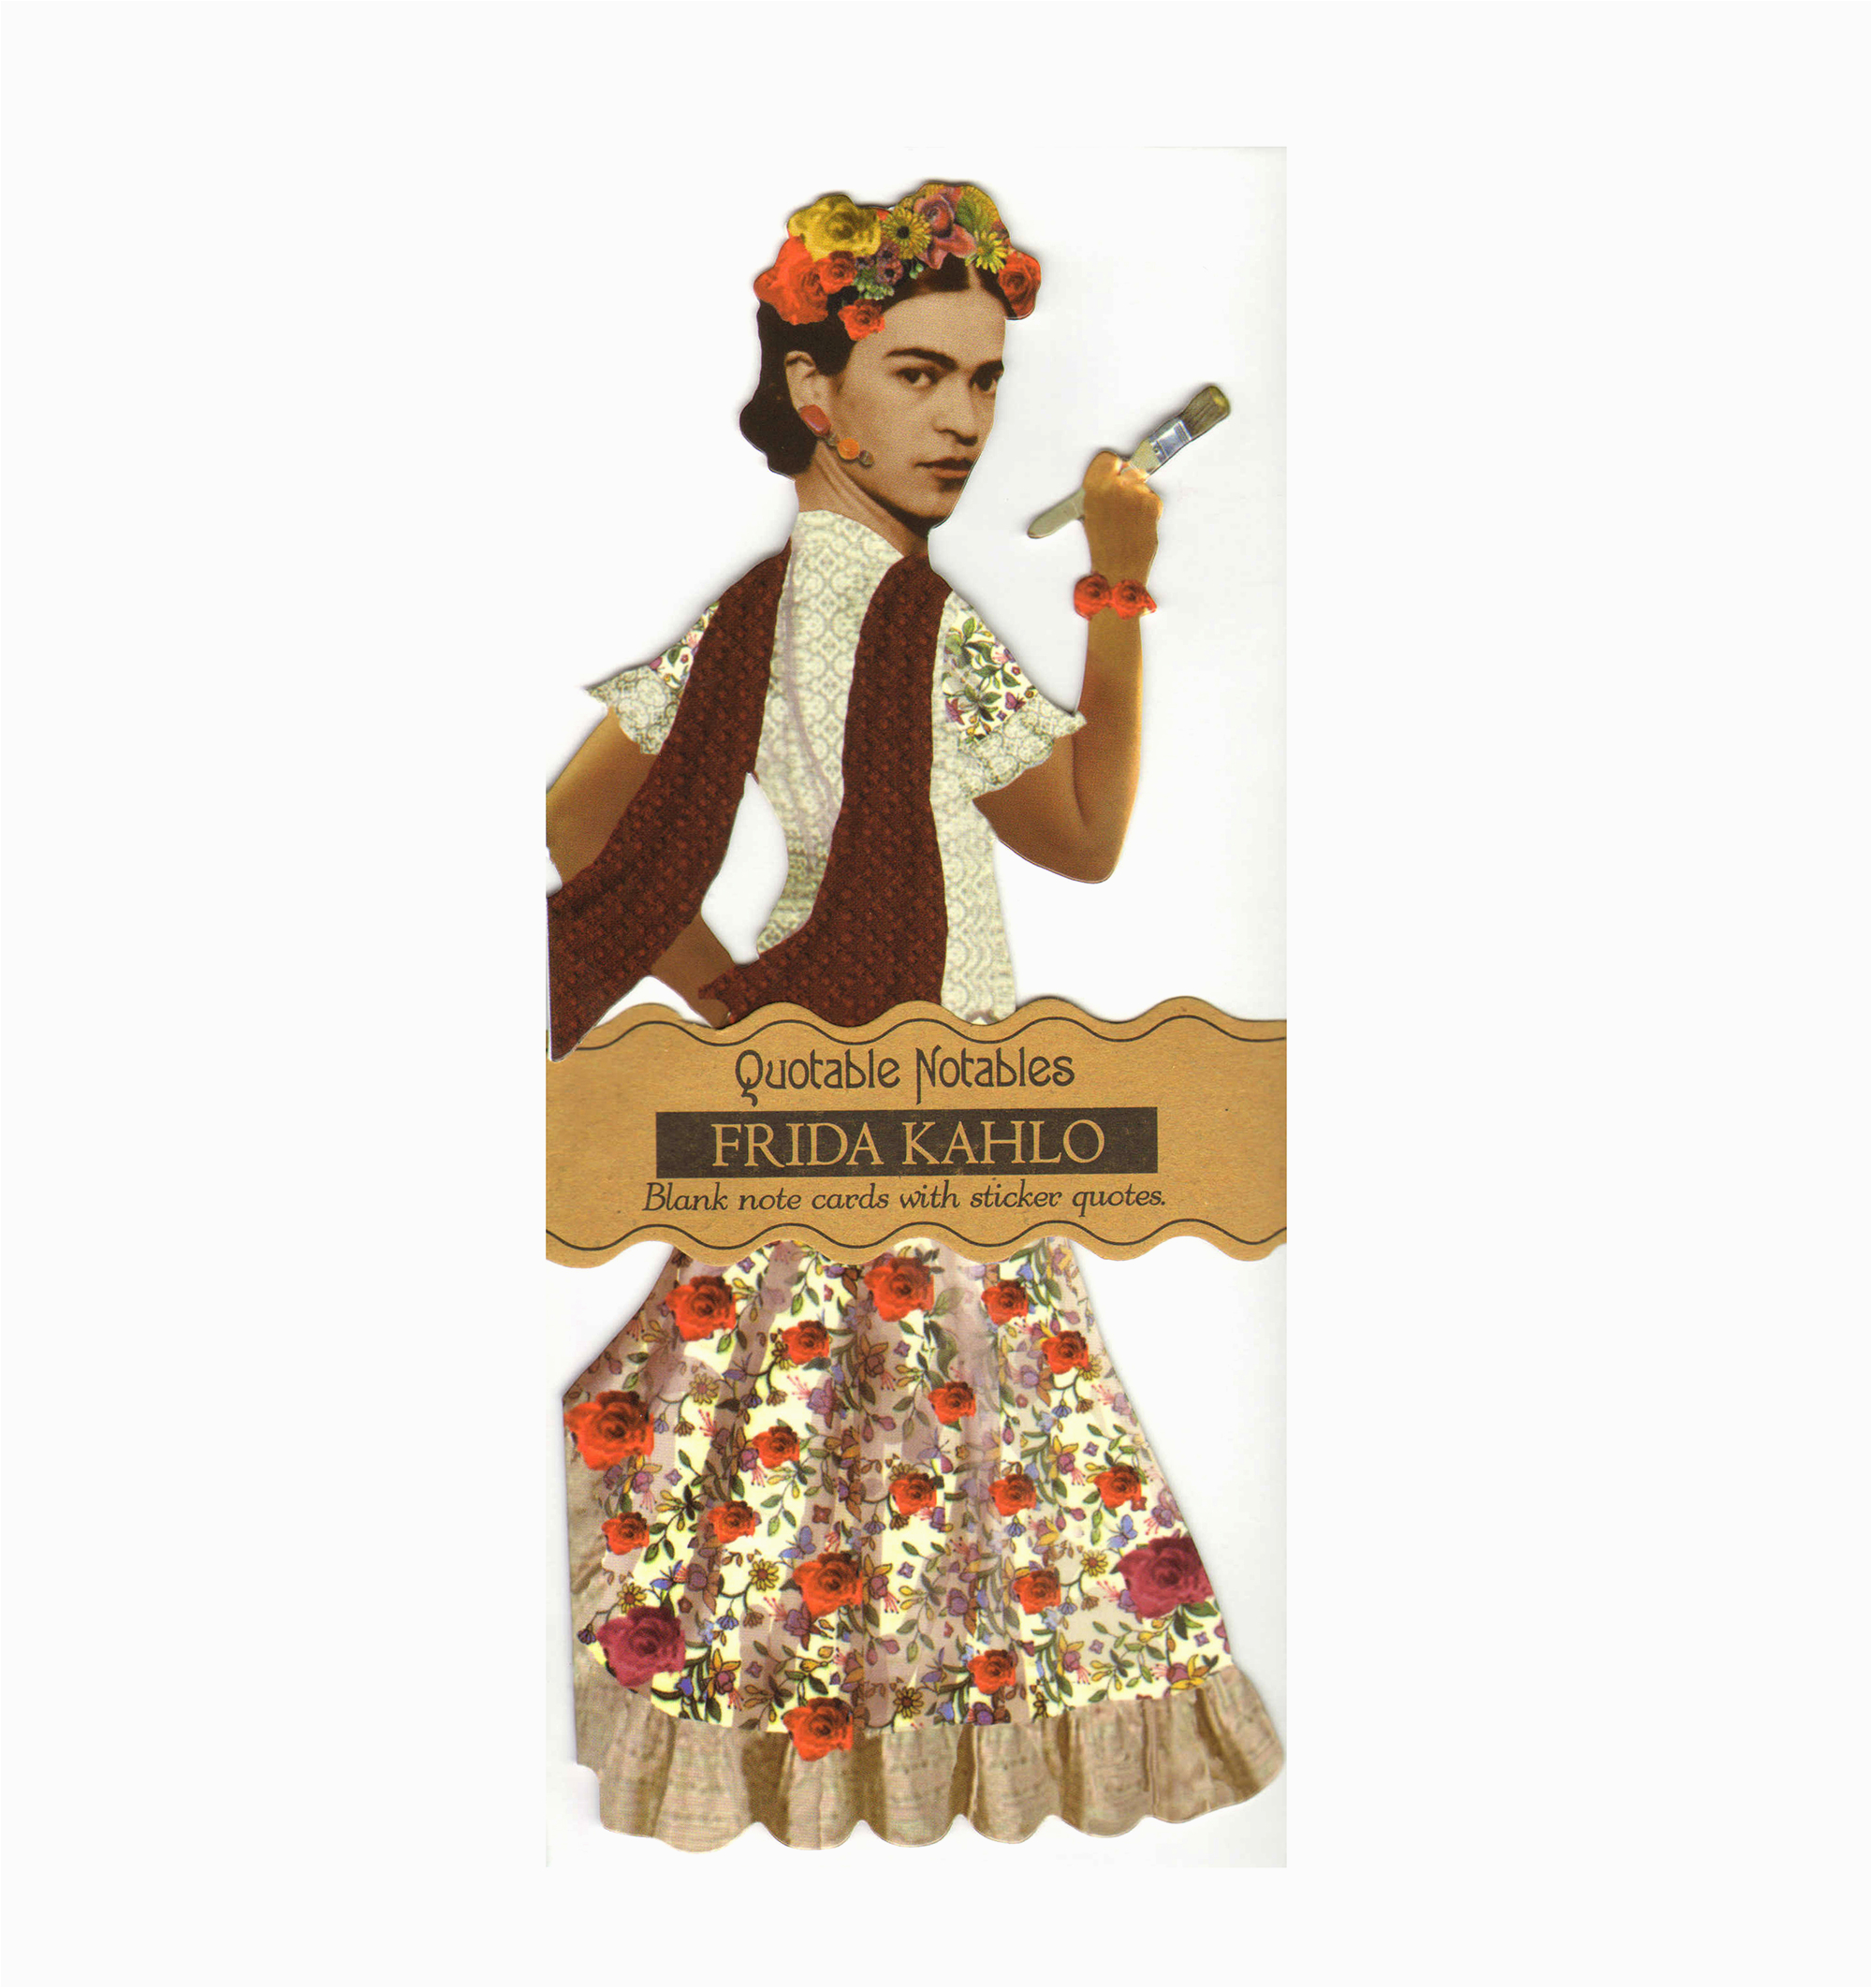 frida kahlo quotable notable greeting card with sticker